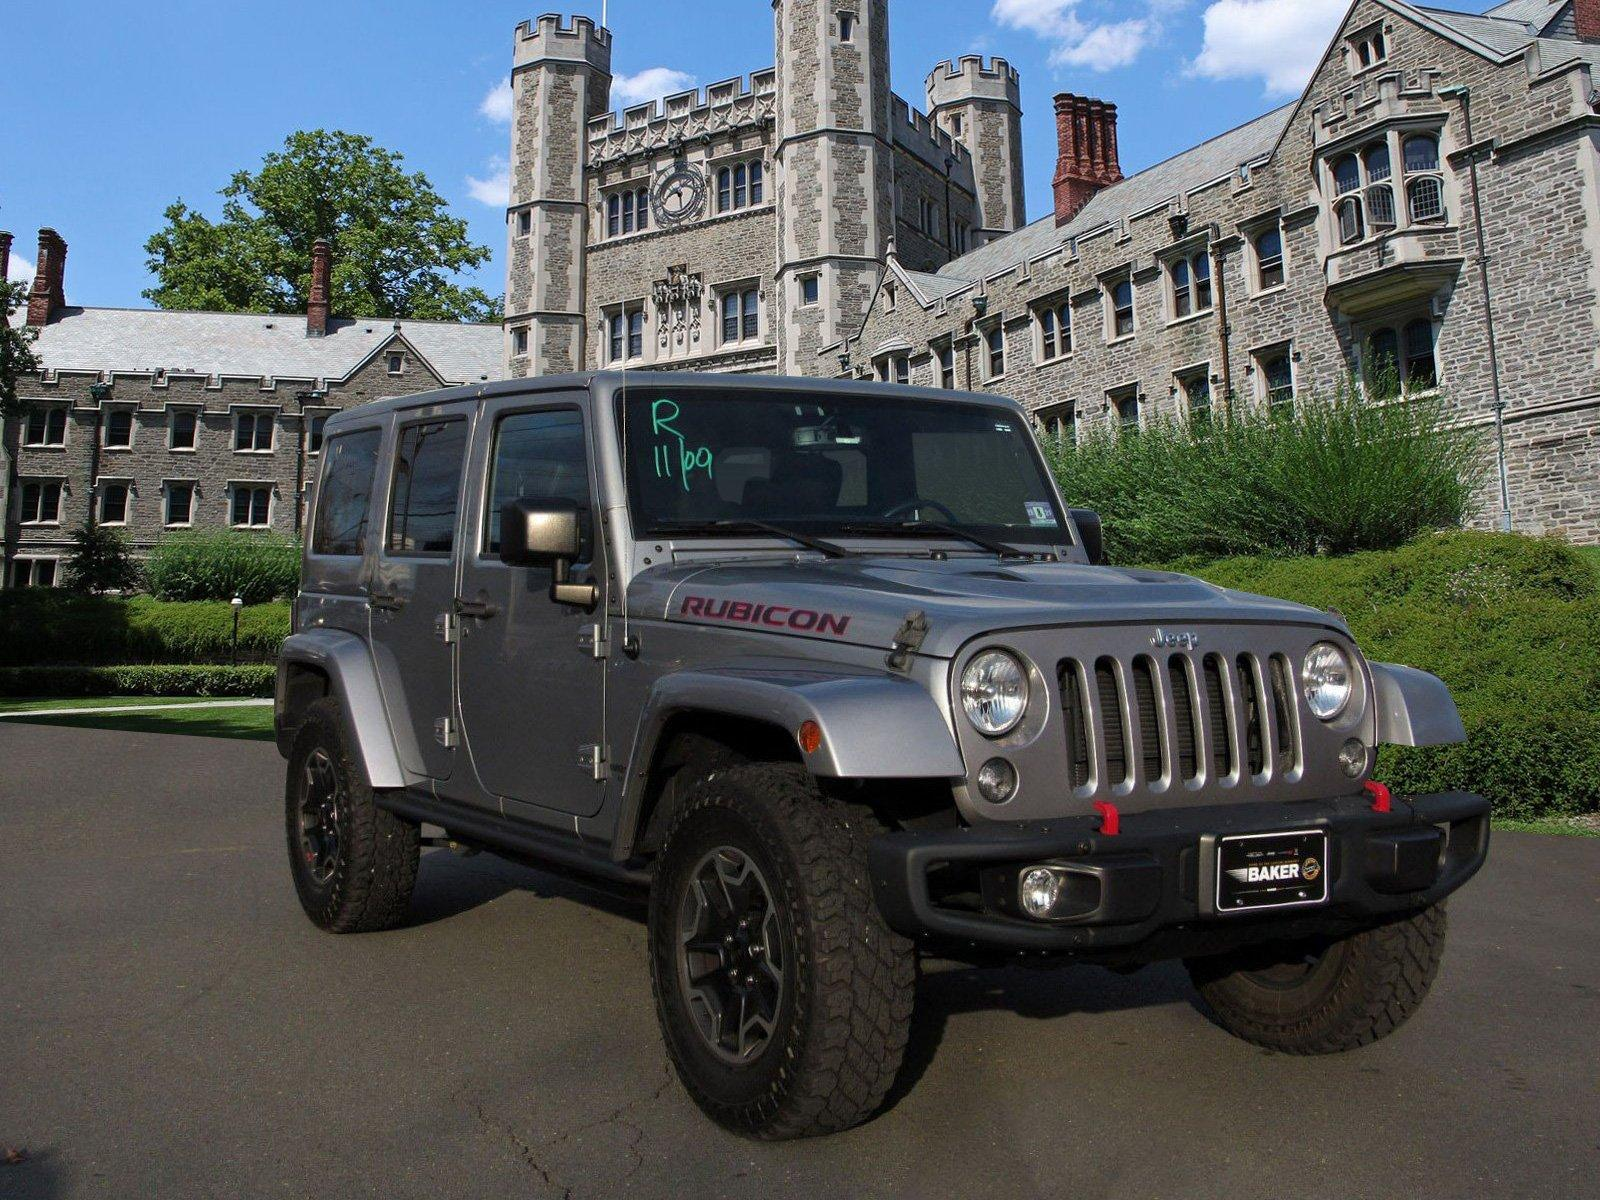 Used 2015 Jeep Wrangler Unlimited Rubicon Hard Rock for sale Sold at Victory Lotus in Princeton NJ 08540 1